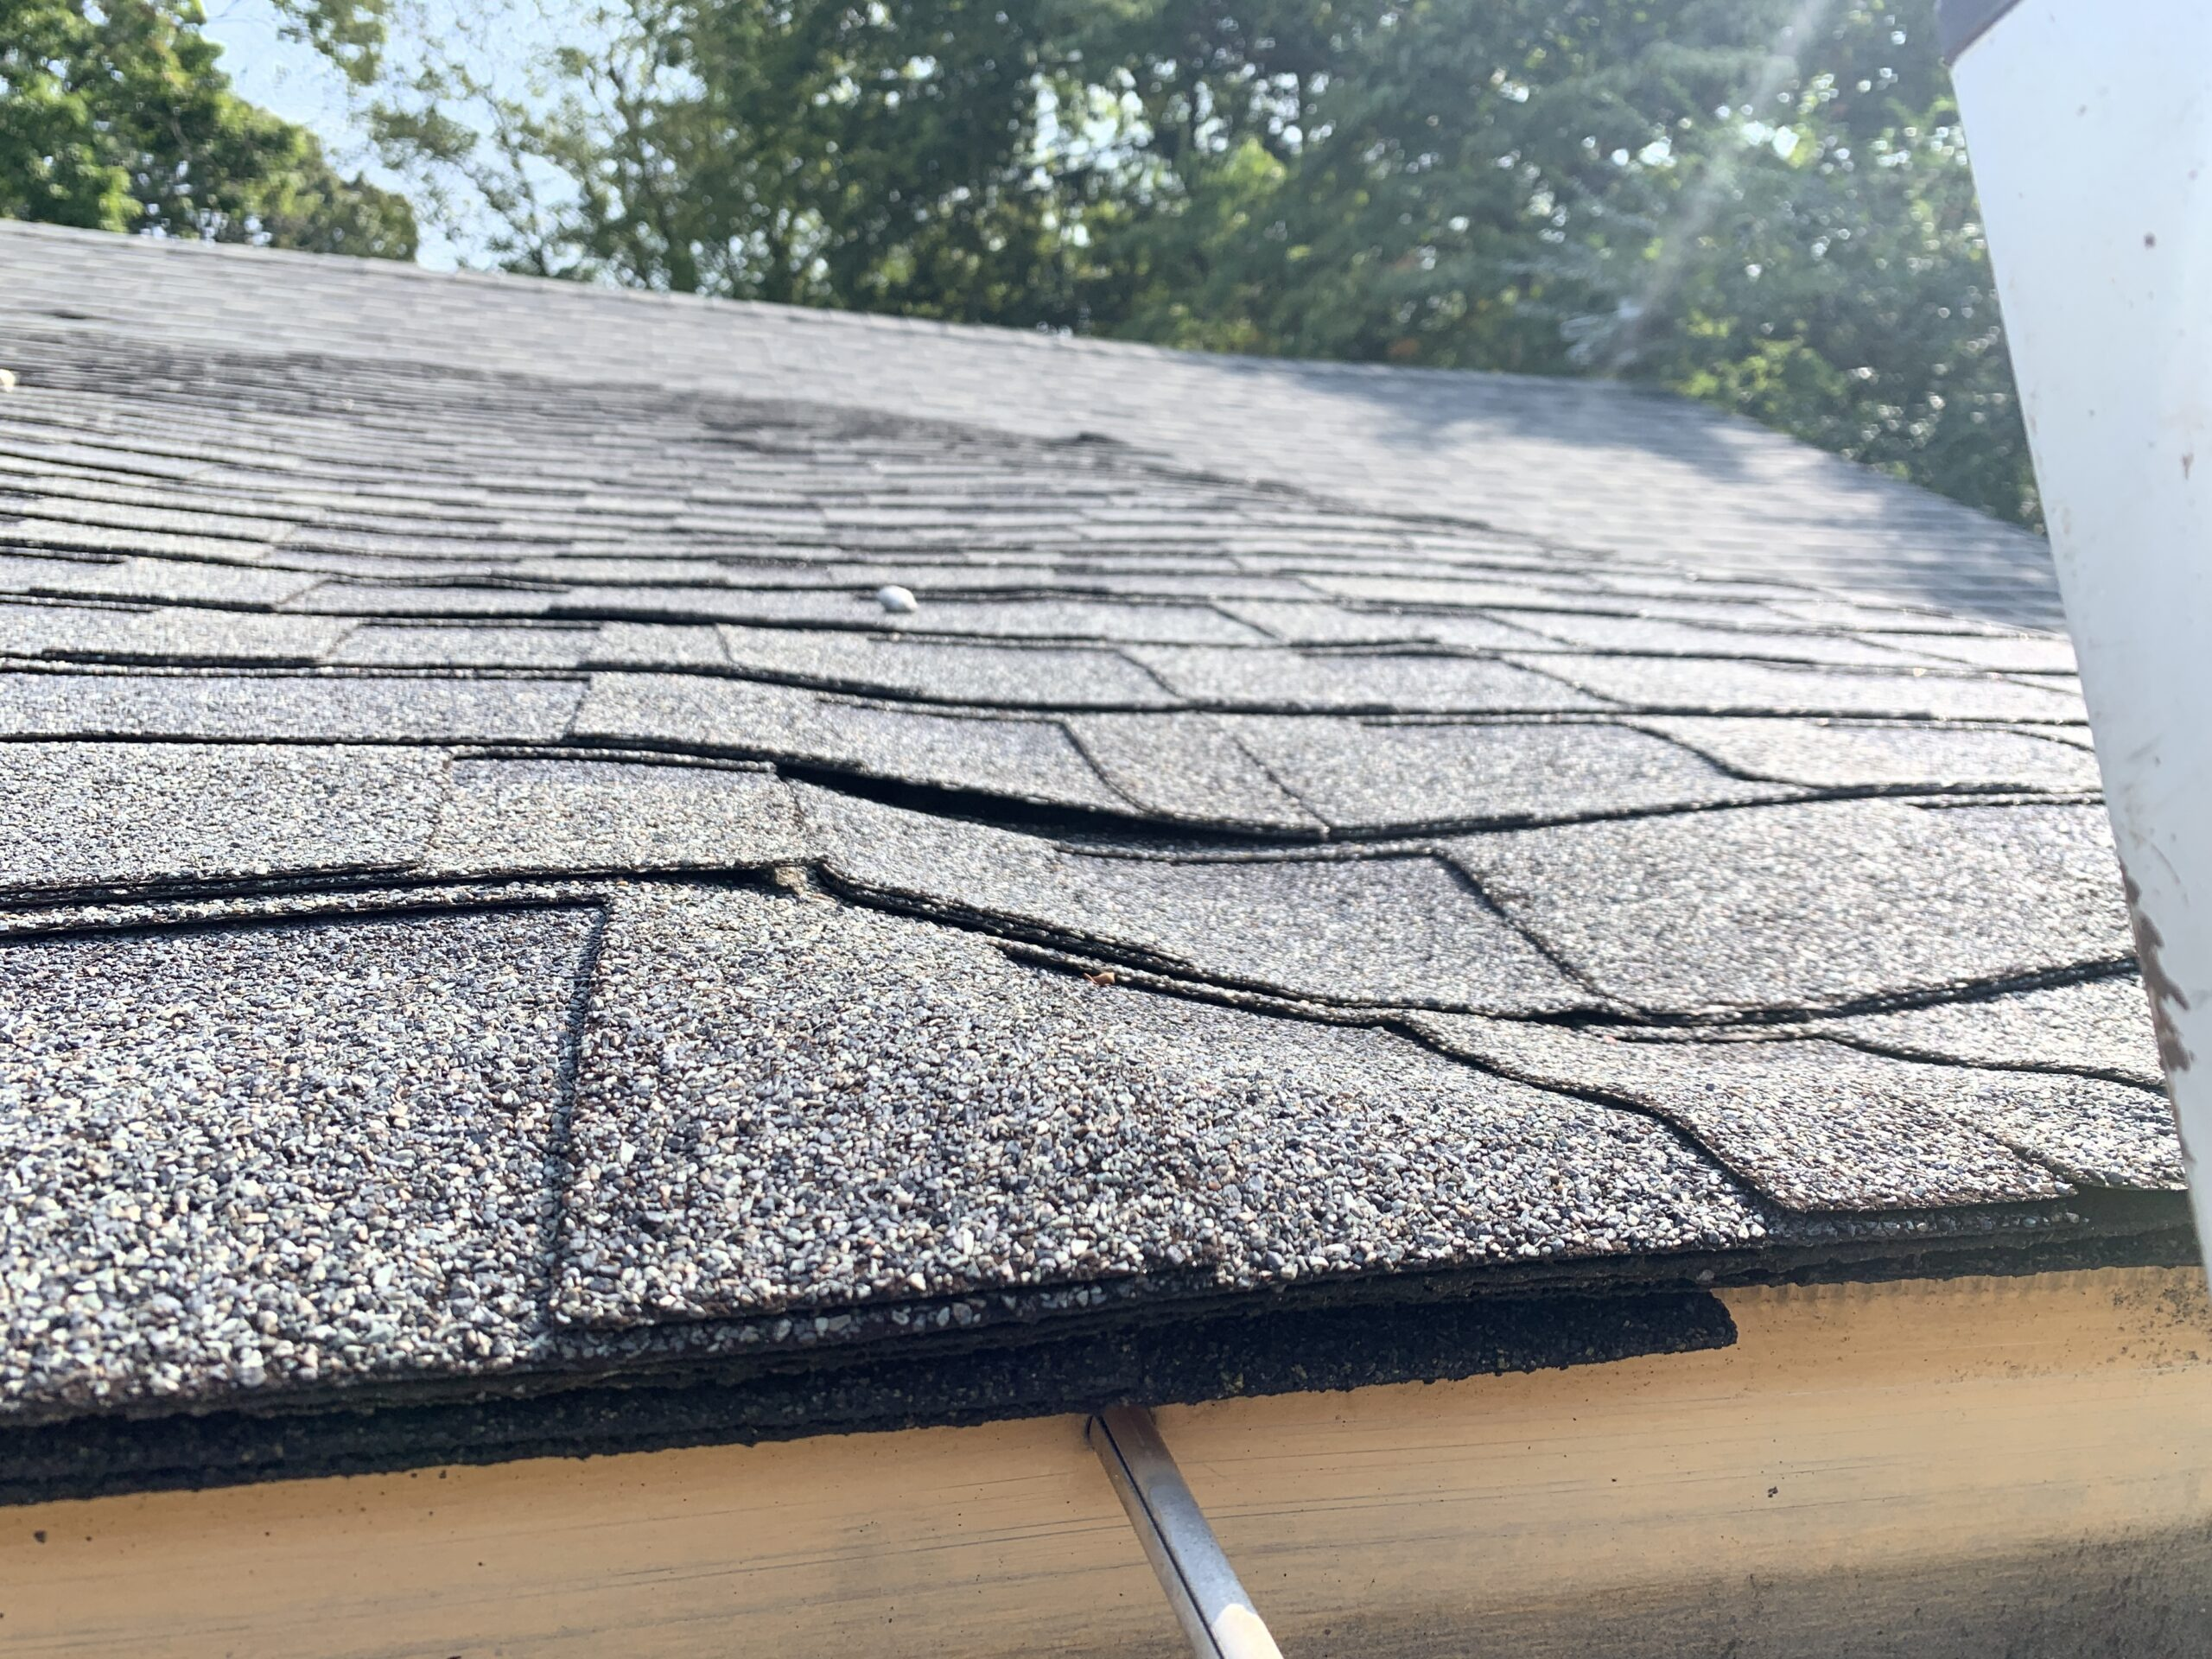 In this photo, you can see that the roof is sagging. This is because the decking underneath the shingles has been exposed to water damage and has softened and rotted the decking underneath. Some boards will need to be replaced